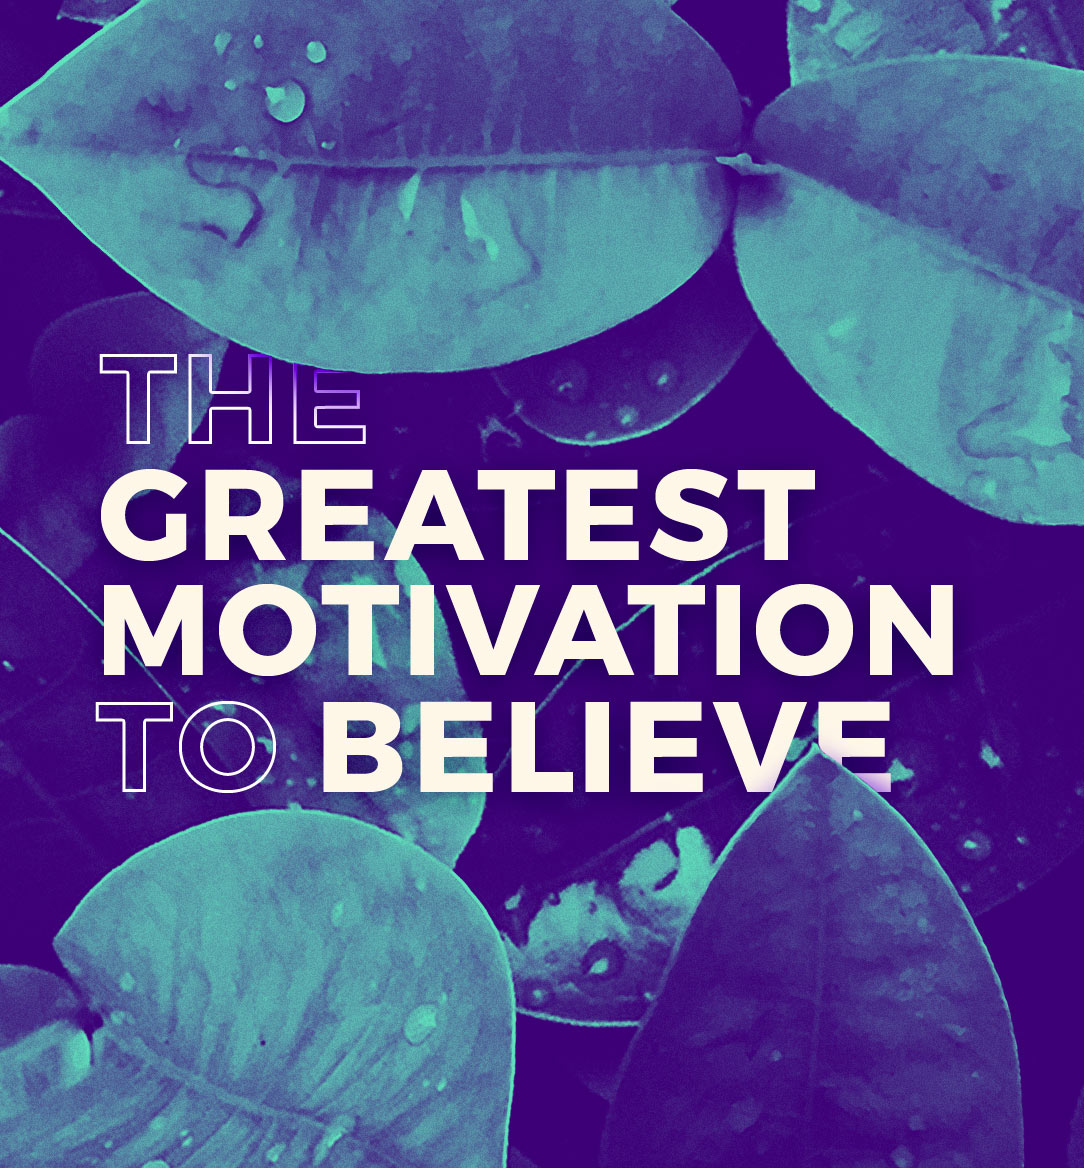 The Greatest Motivation to Believe - Berean Bible Church of